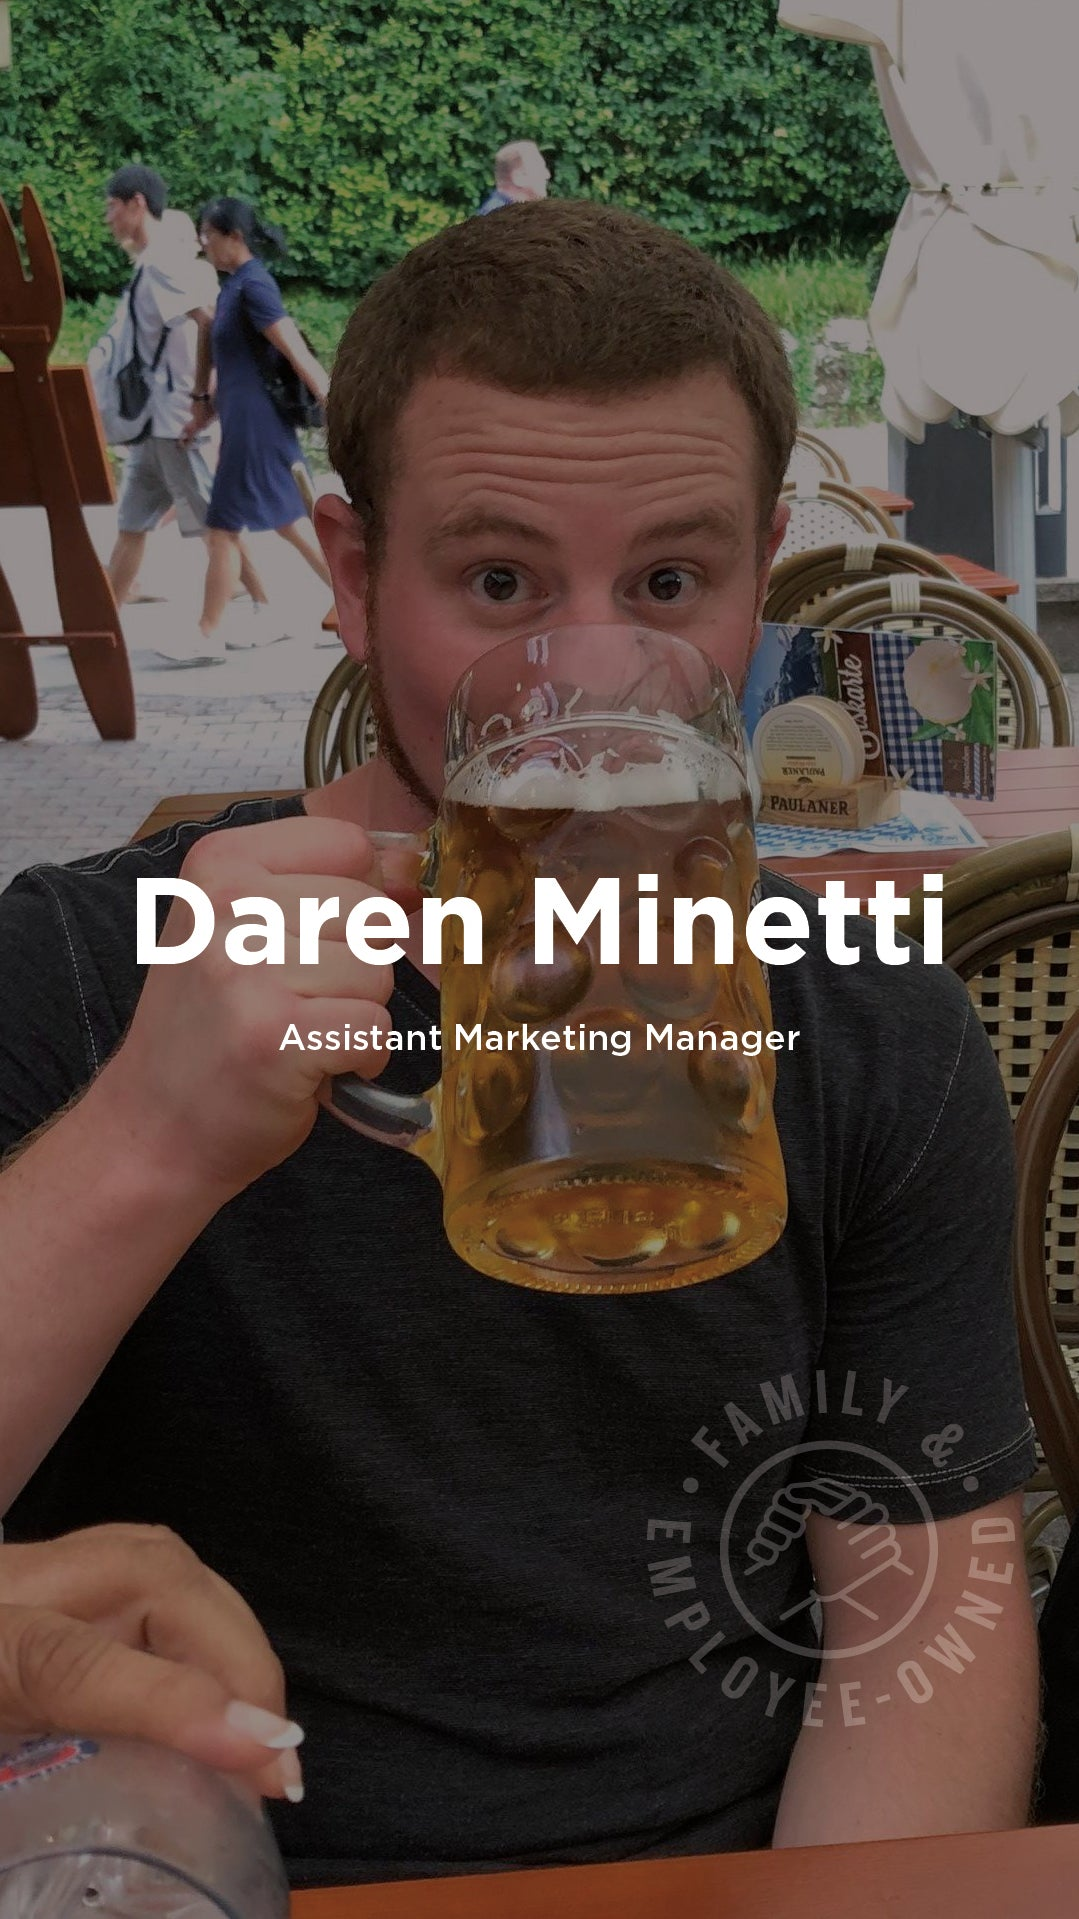 Picks from Klean's Daren Minetti